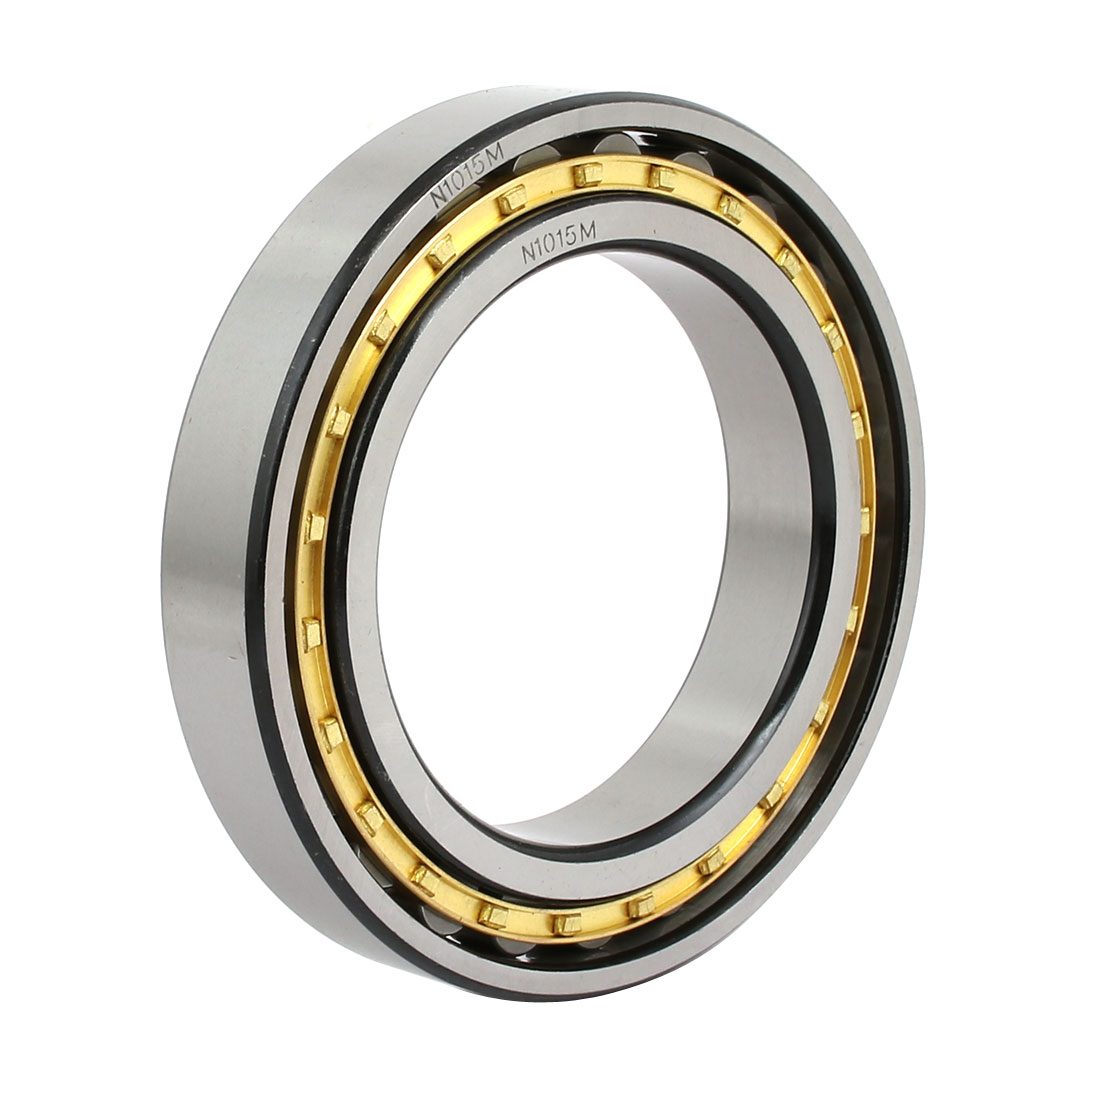 N1015M 115mmx75mmx20mm Single Row Cylindrical Roller Bearing